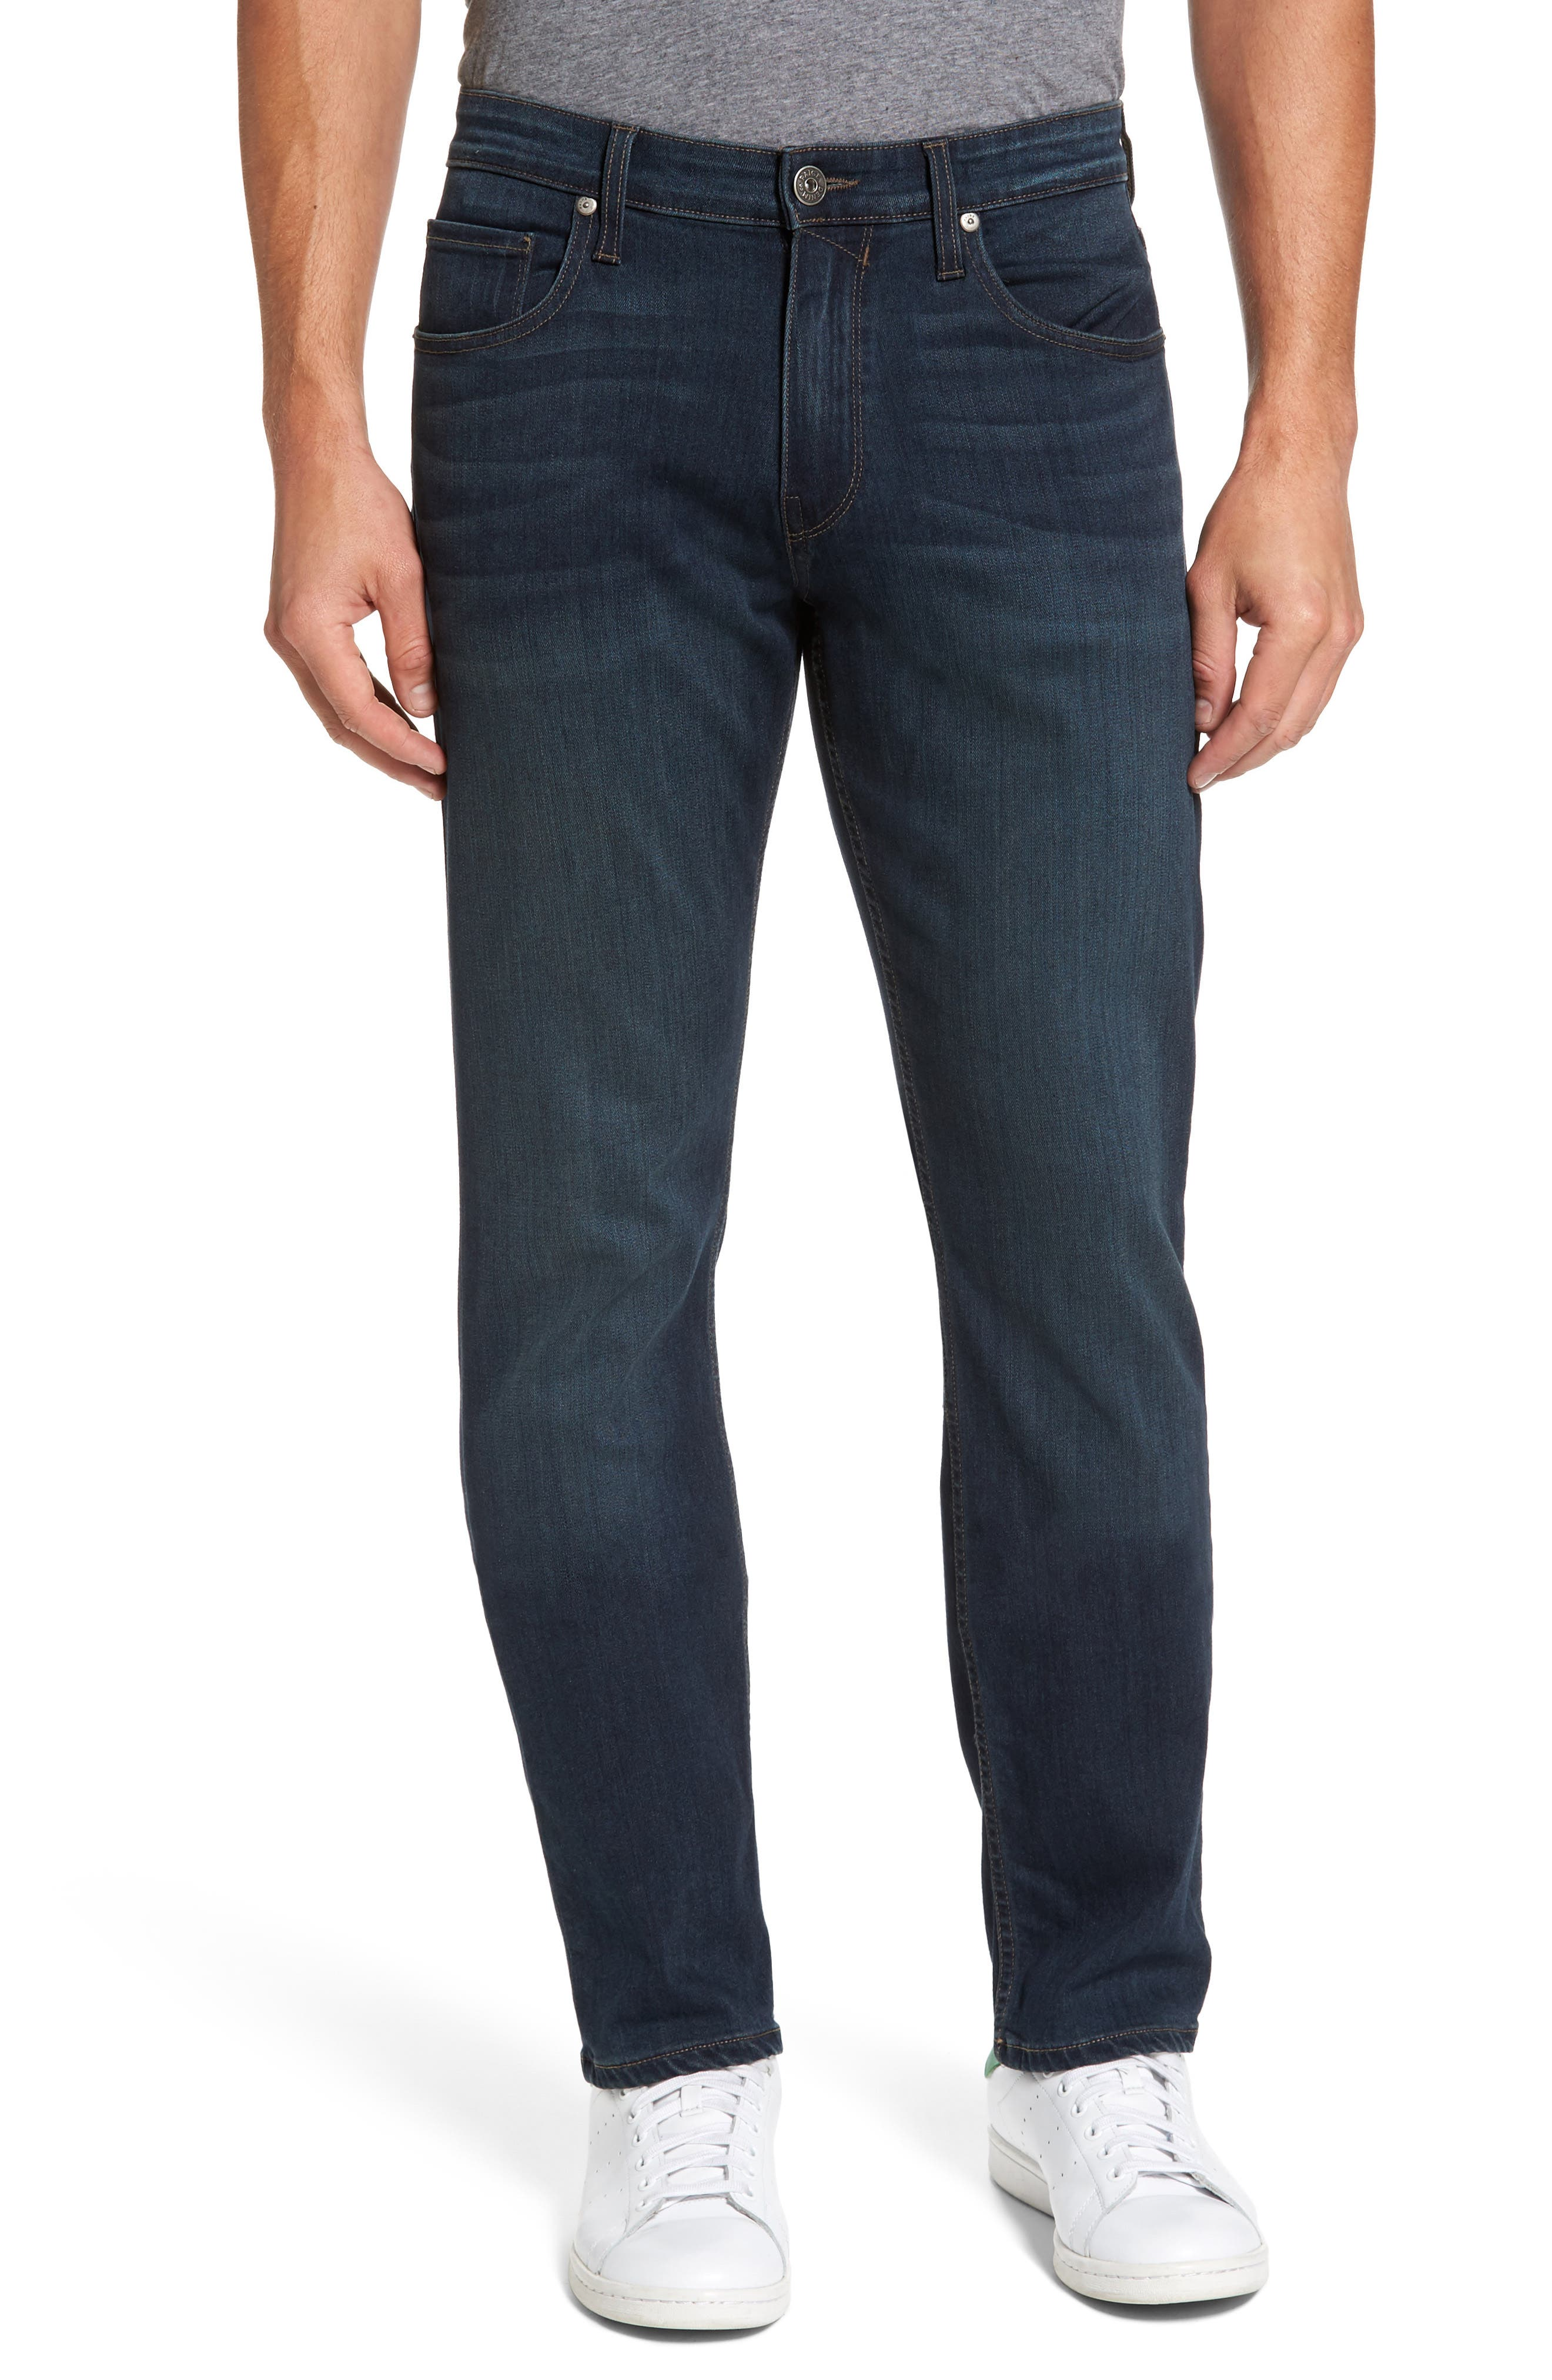 Normandie Straight Fit Jeans,                             Main thumbnail 1, color,                             400